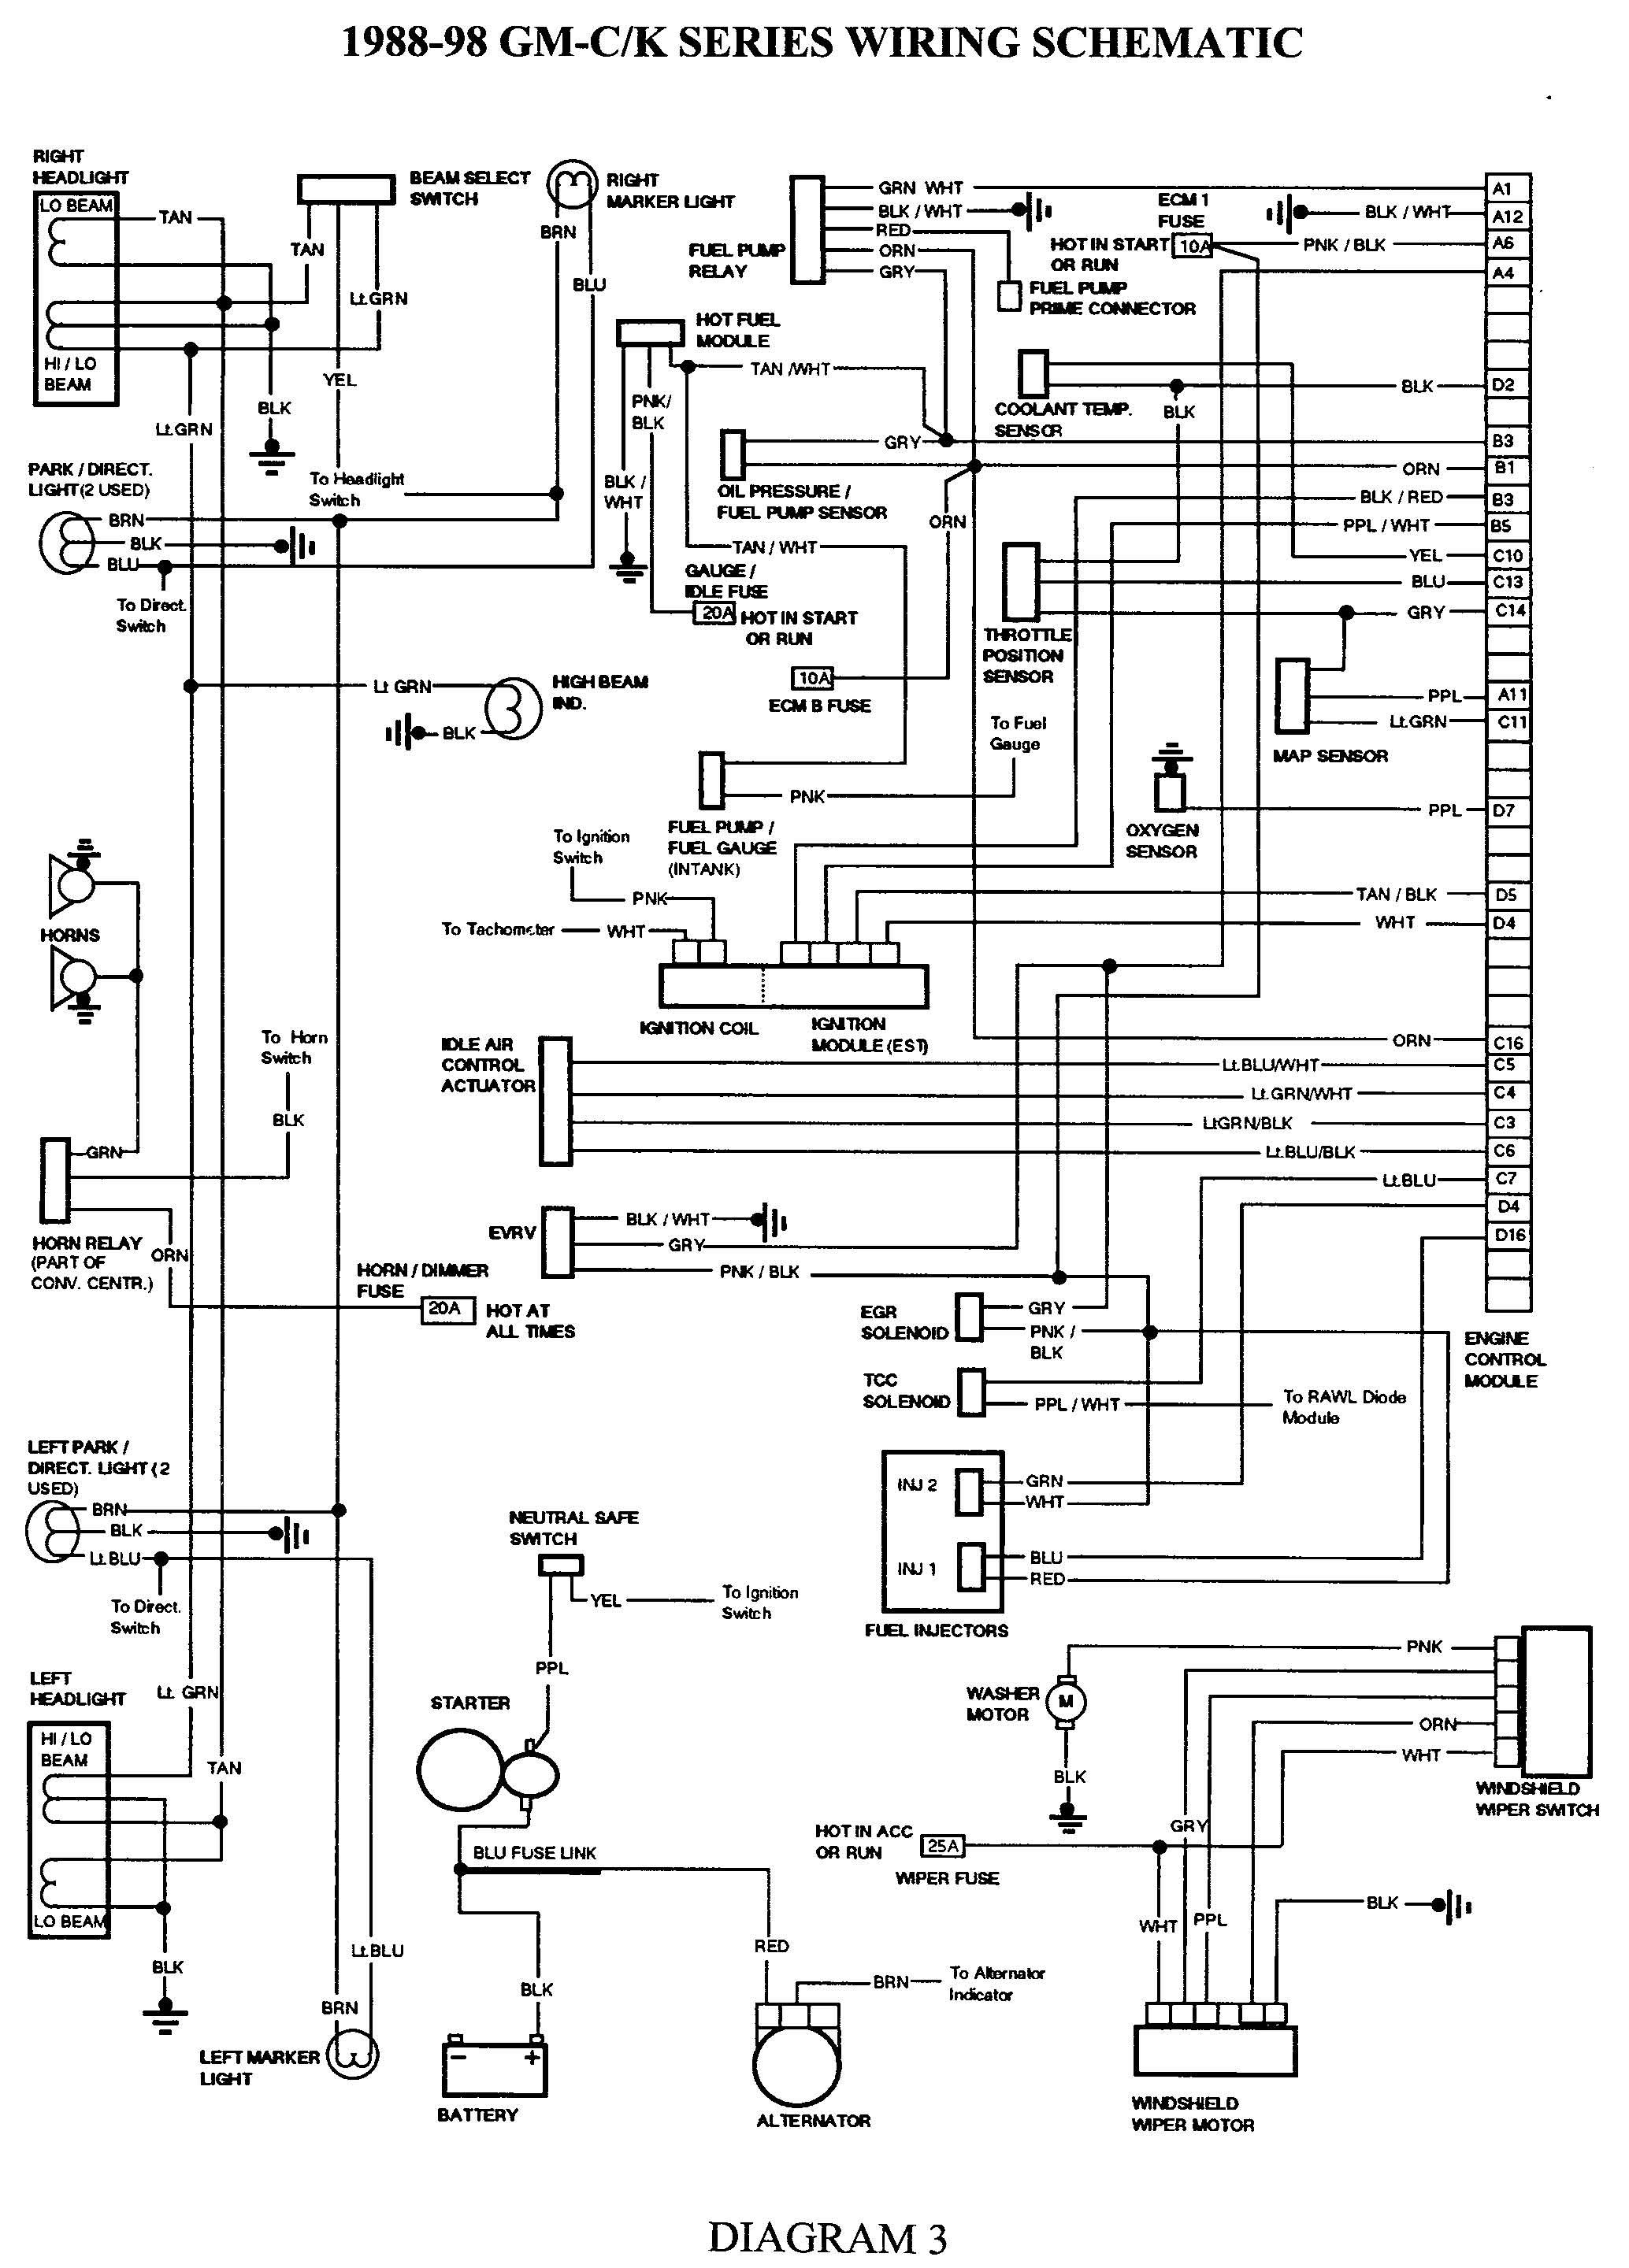 1998 corvette wiring diagram example electrical wiring diagram u2022 rh huntervalleyhotels co 1969 Corvette Wiring Schematic 1975 Corvette Wiring Schematic